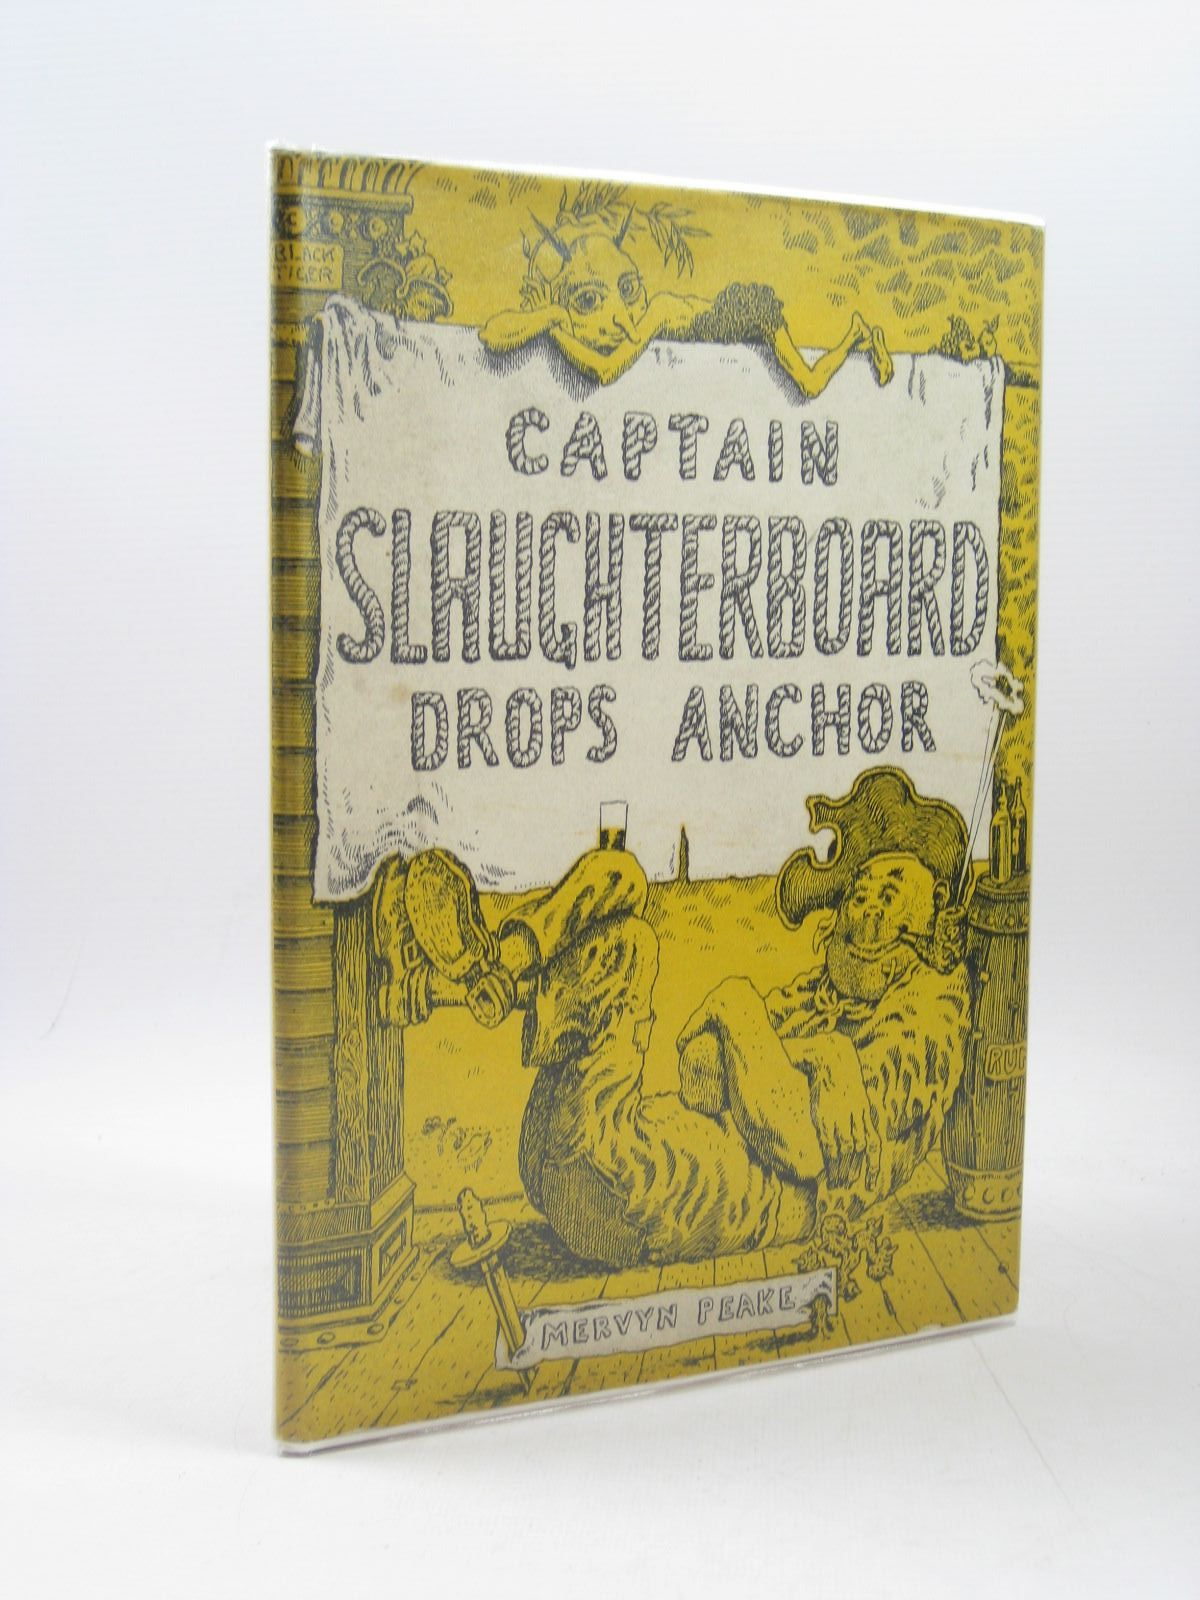 Photo of CAPTAIN SLAUGHTERBOARD DROPS ANCHOR written by Peake, Mervyn illustrated by Peake, Mervyn published by Eyre & Spottiswoode (STOCK CODE: 1314190)  for sale by Stella & Rose's Books